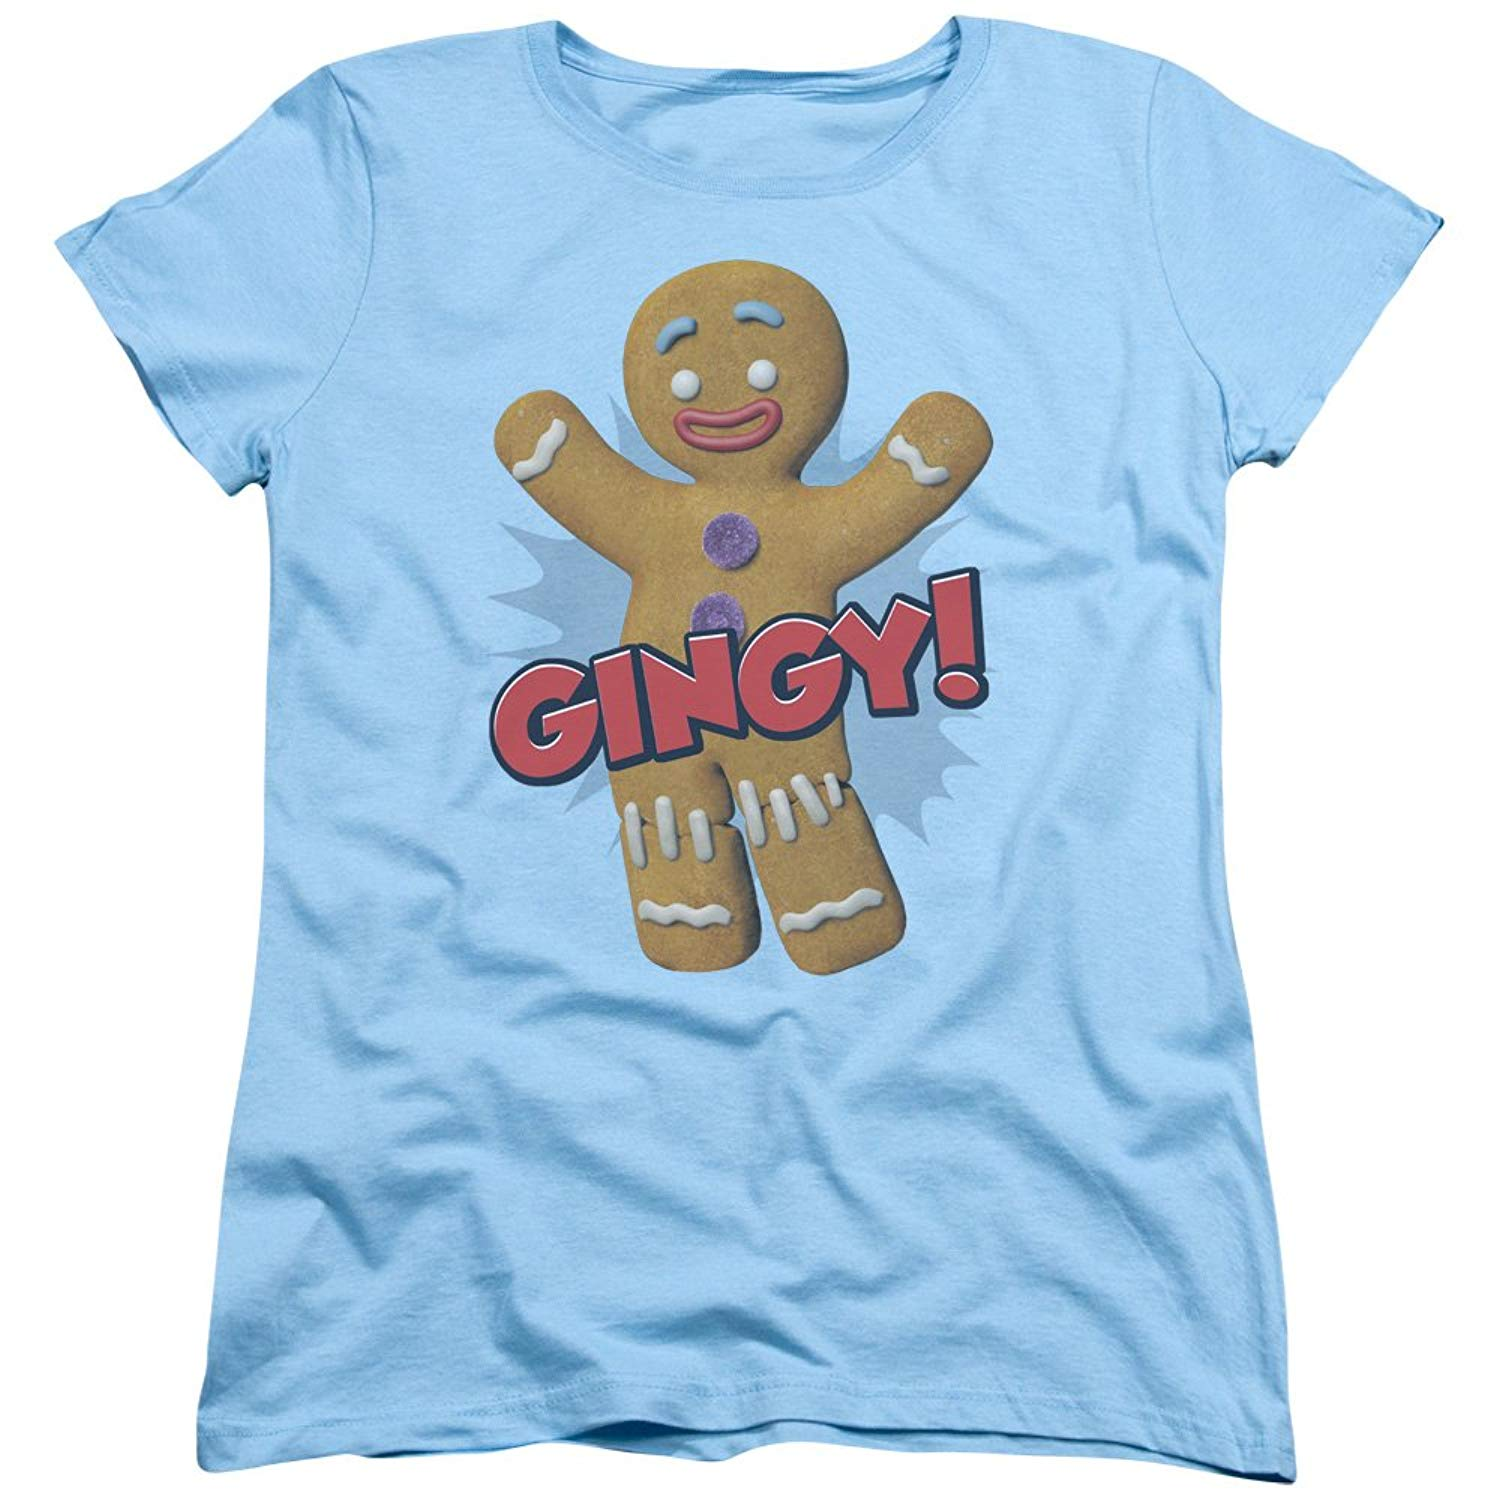 Shrek Animated Childrens Comedy Movie Gingy Gingerbread Man T Shirt